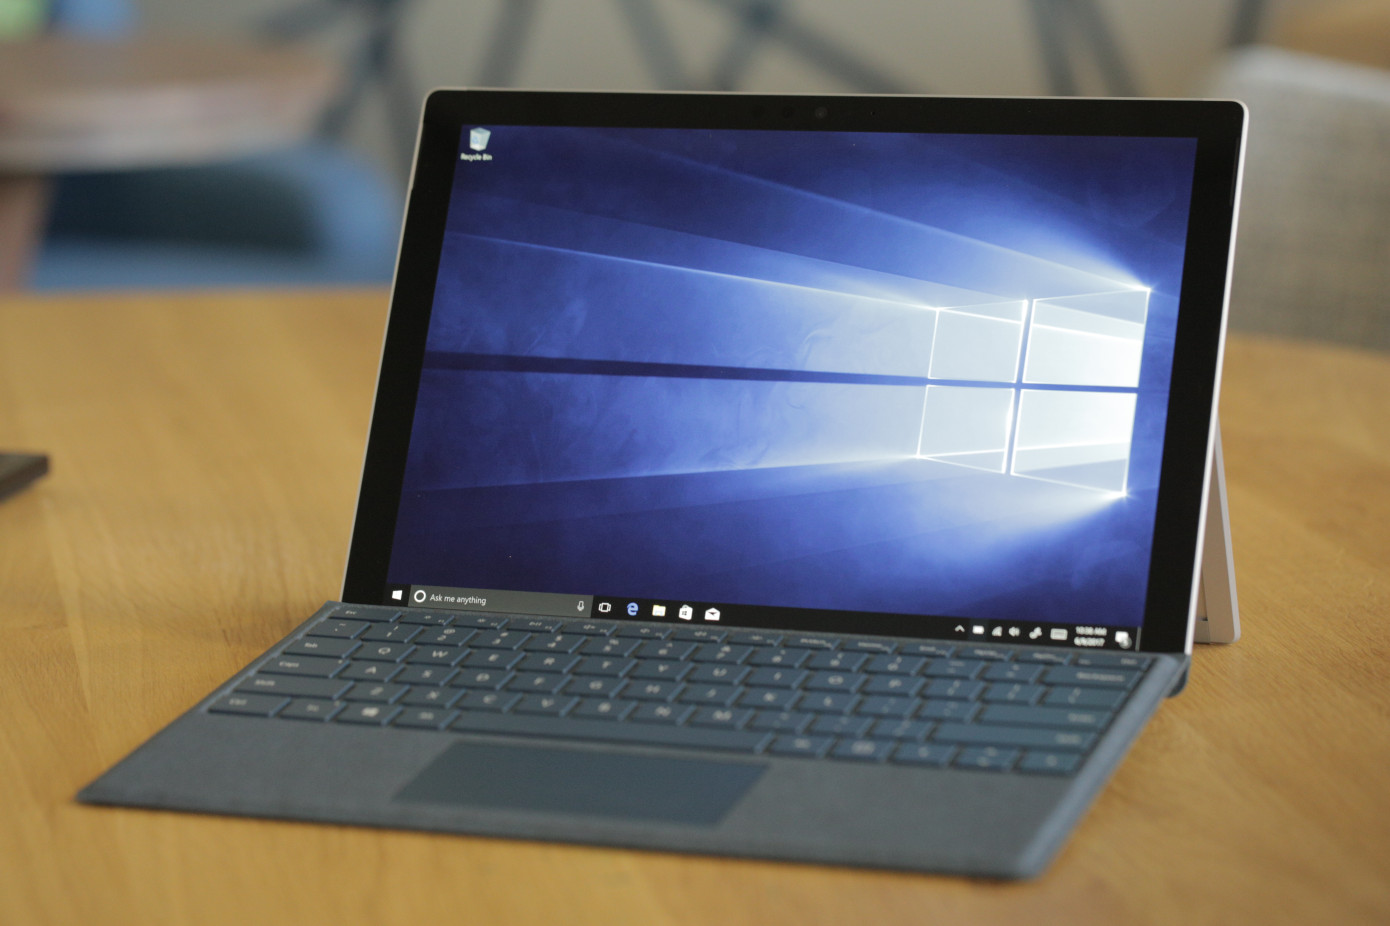 Microsoft reportedly planning low-priced Surface tablets to compete with iPad